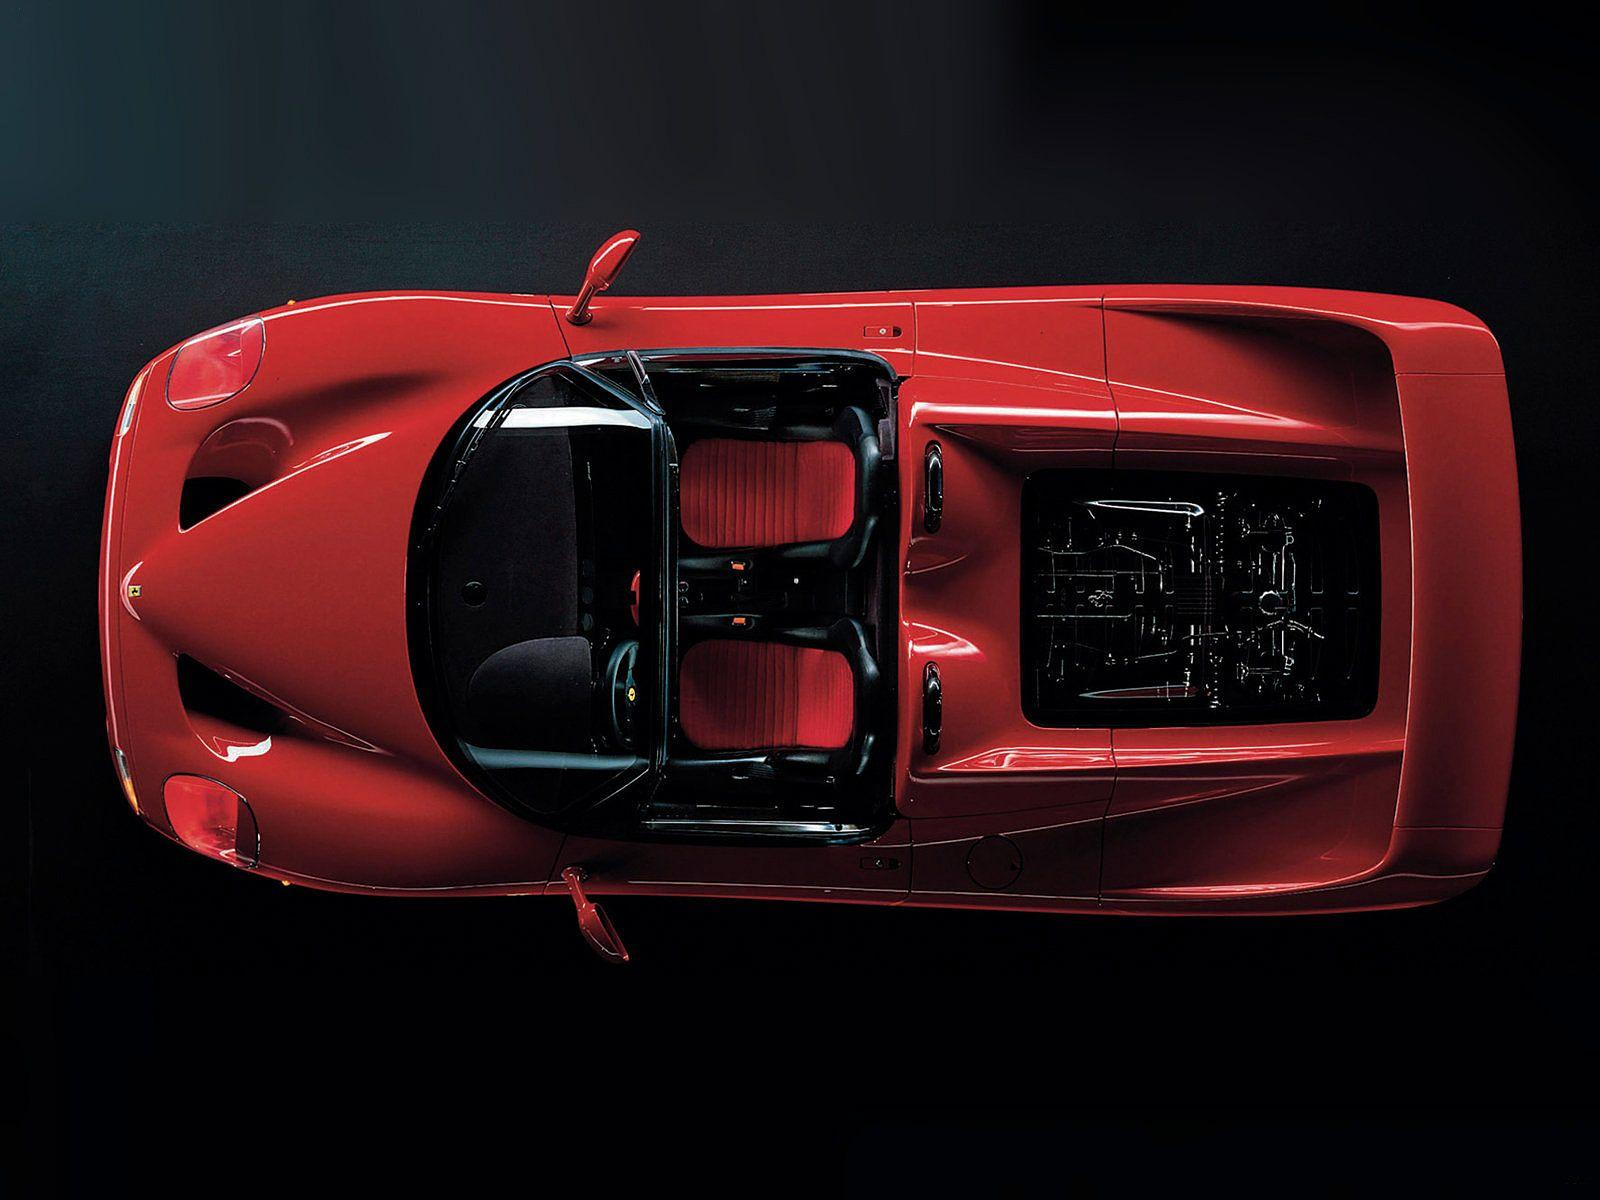 1995 FERRARI F50 car wallpapers and specifications